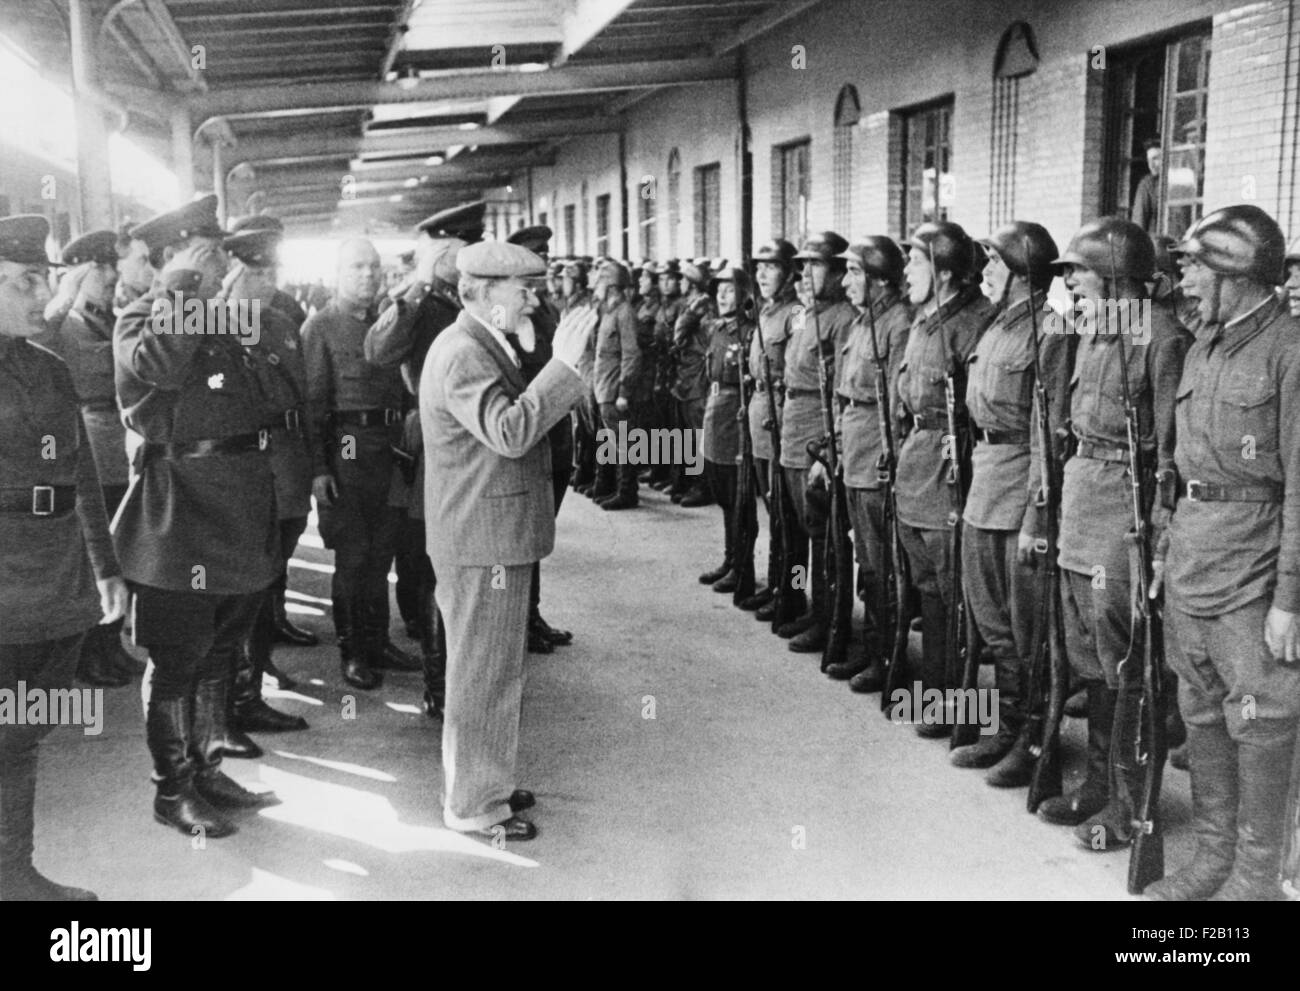 Mikhail Kalinin, Chairman of the Presidium of the Supreme Soviet, reviews troops at Vyborg. Three month after Finland's - Stock Image